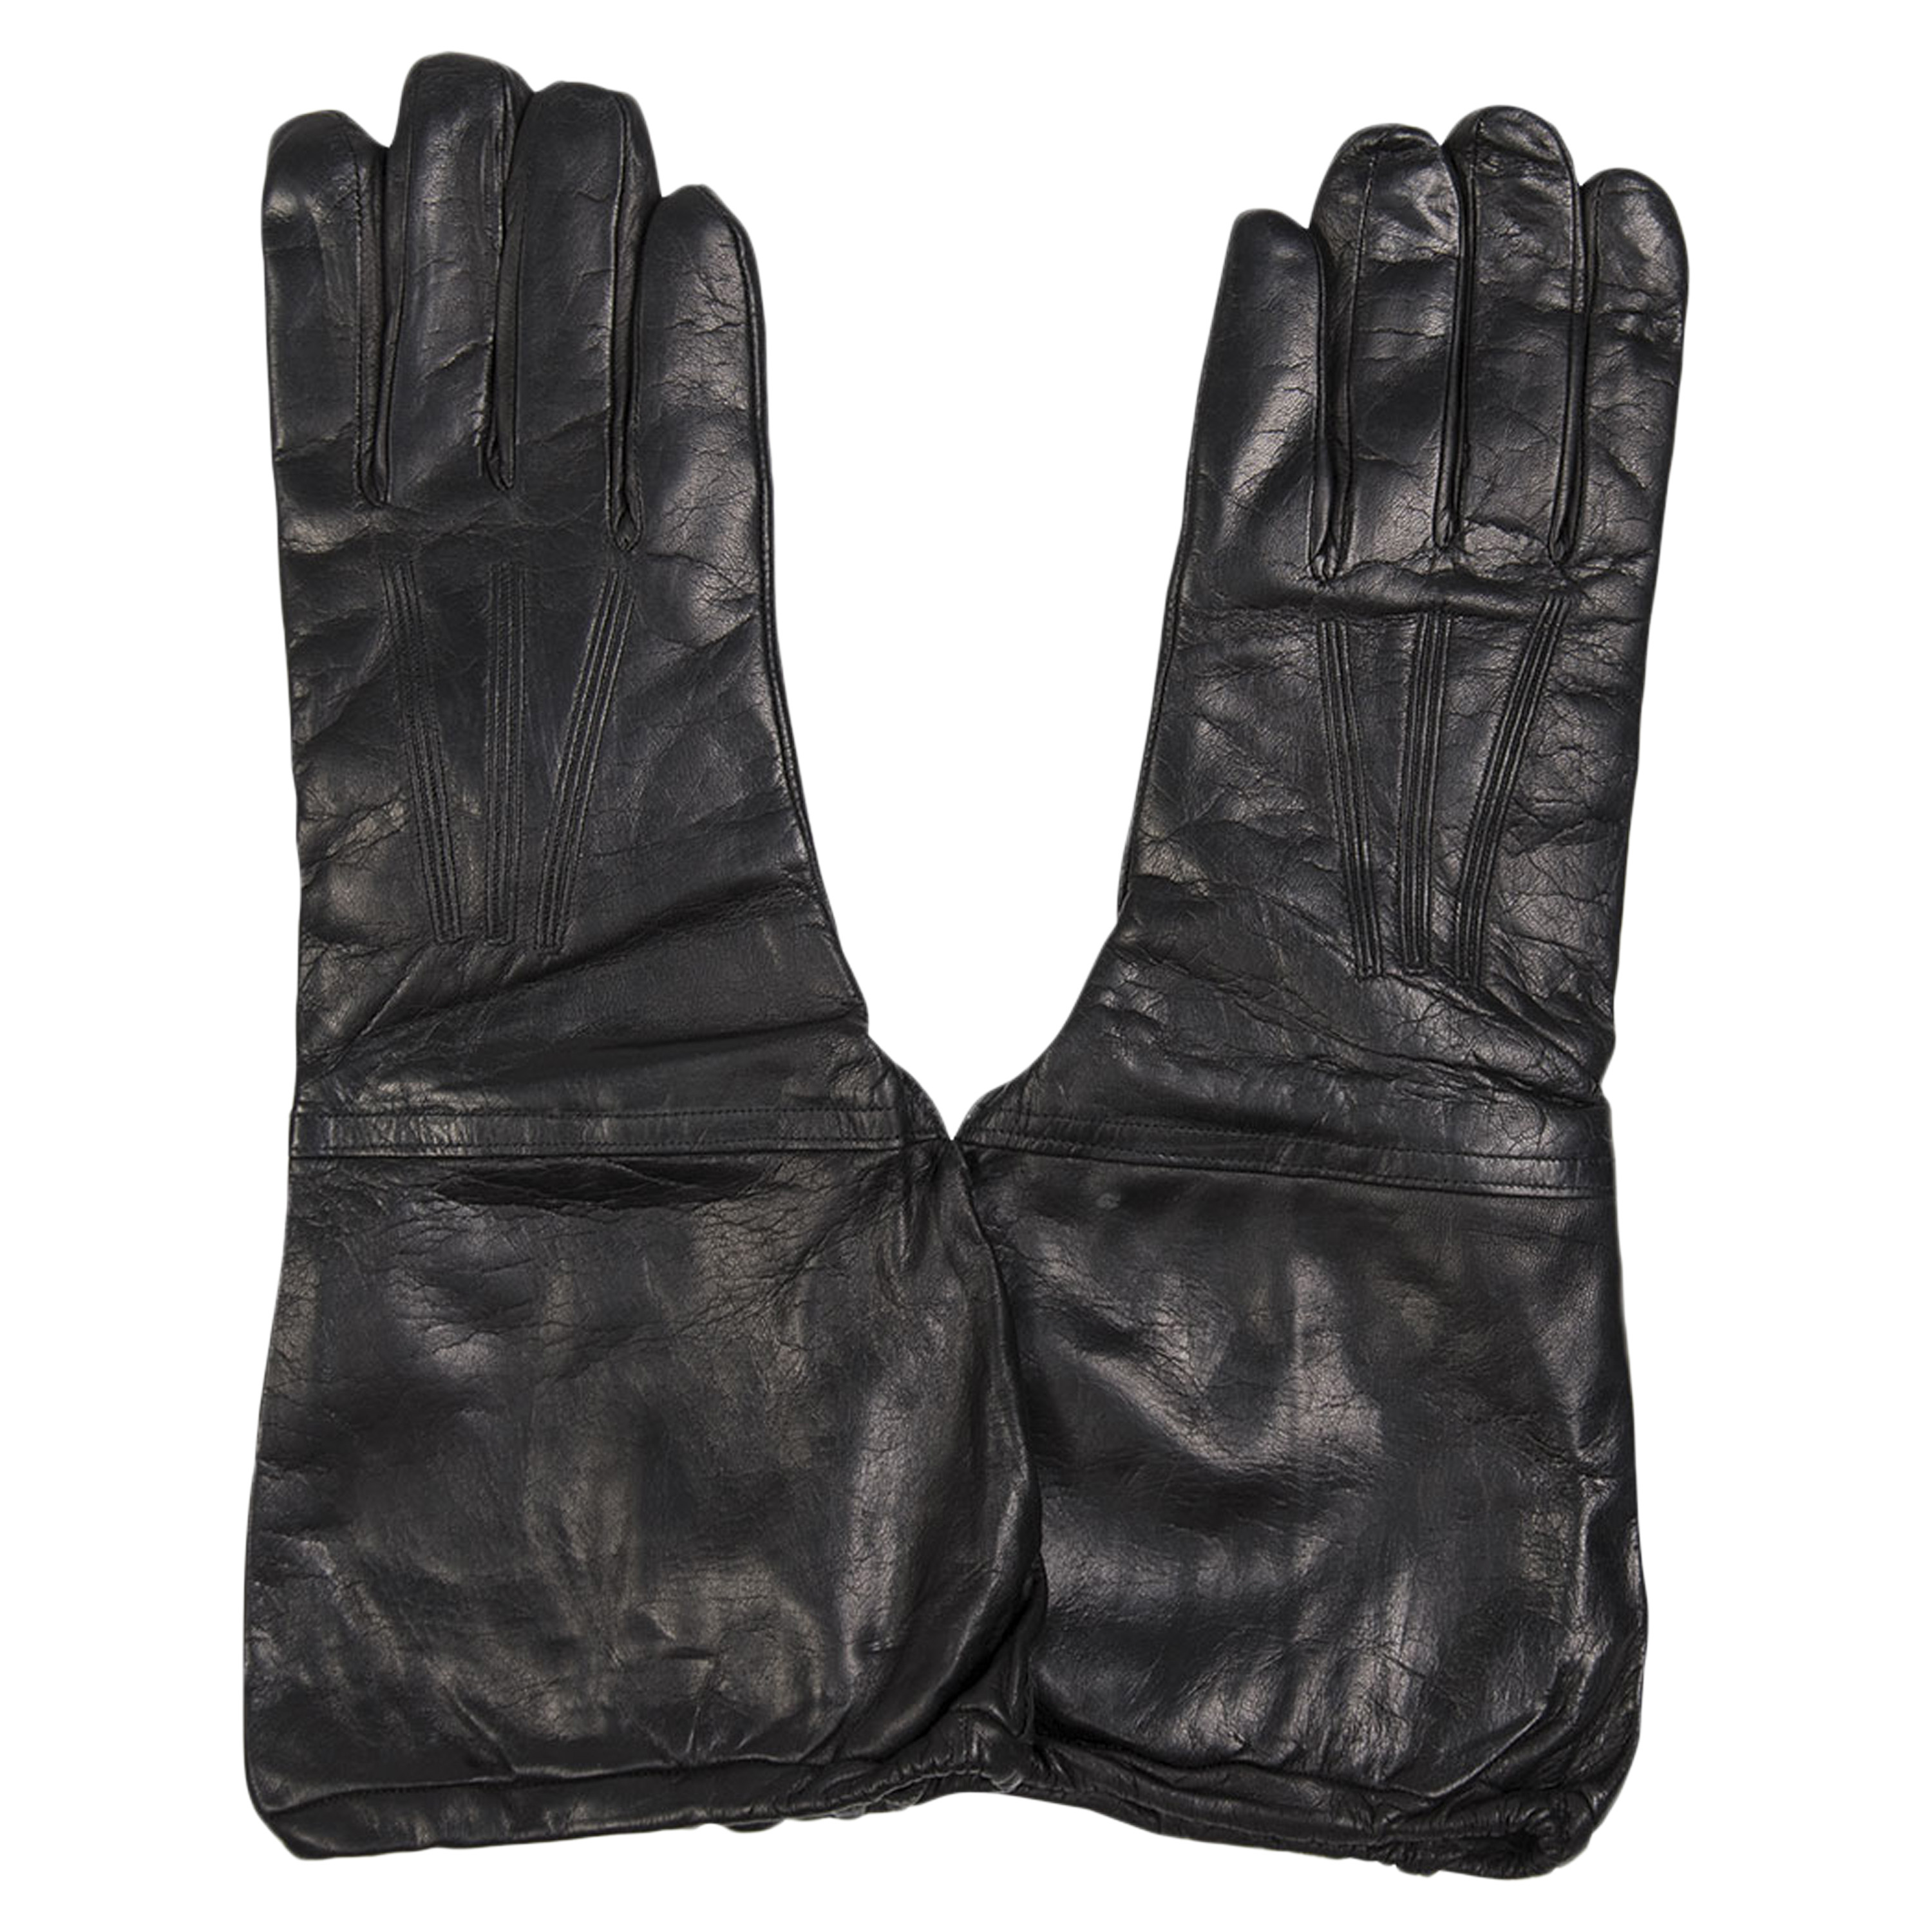 Italian Leather Gloves with Cuffs Like New black